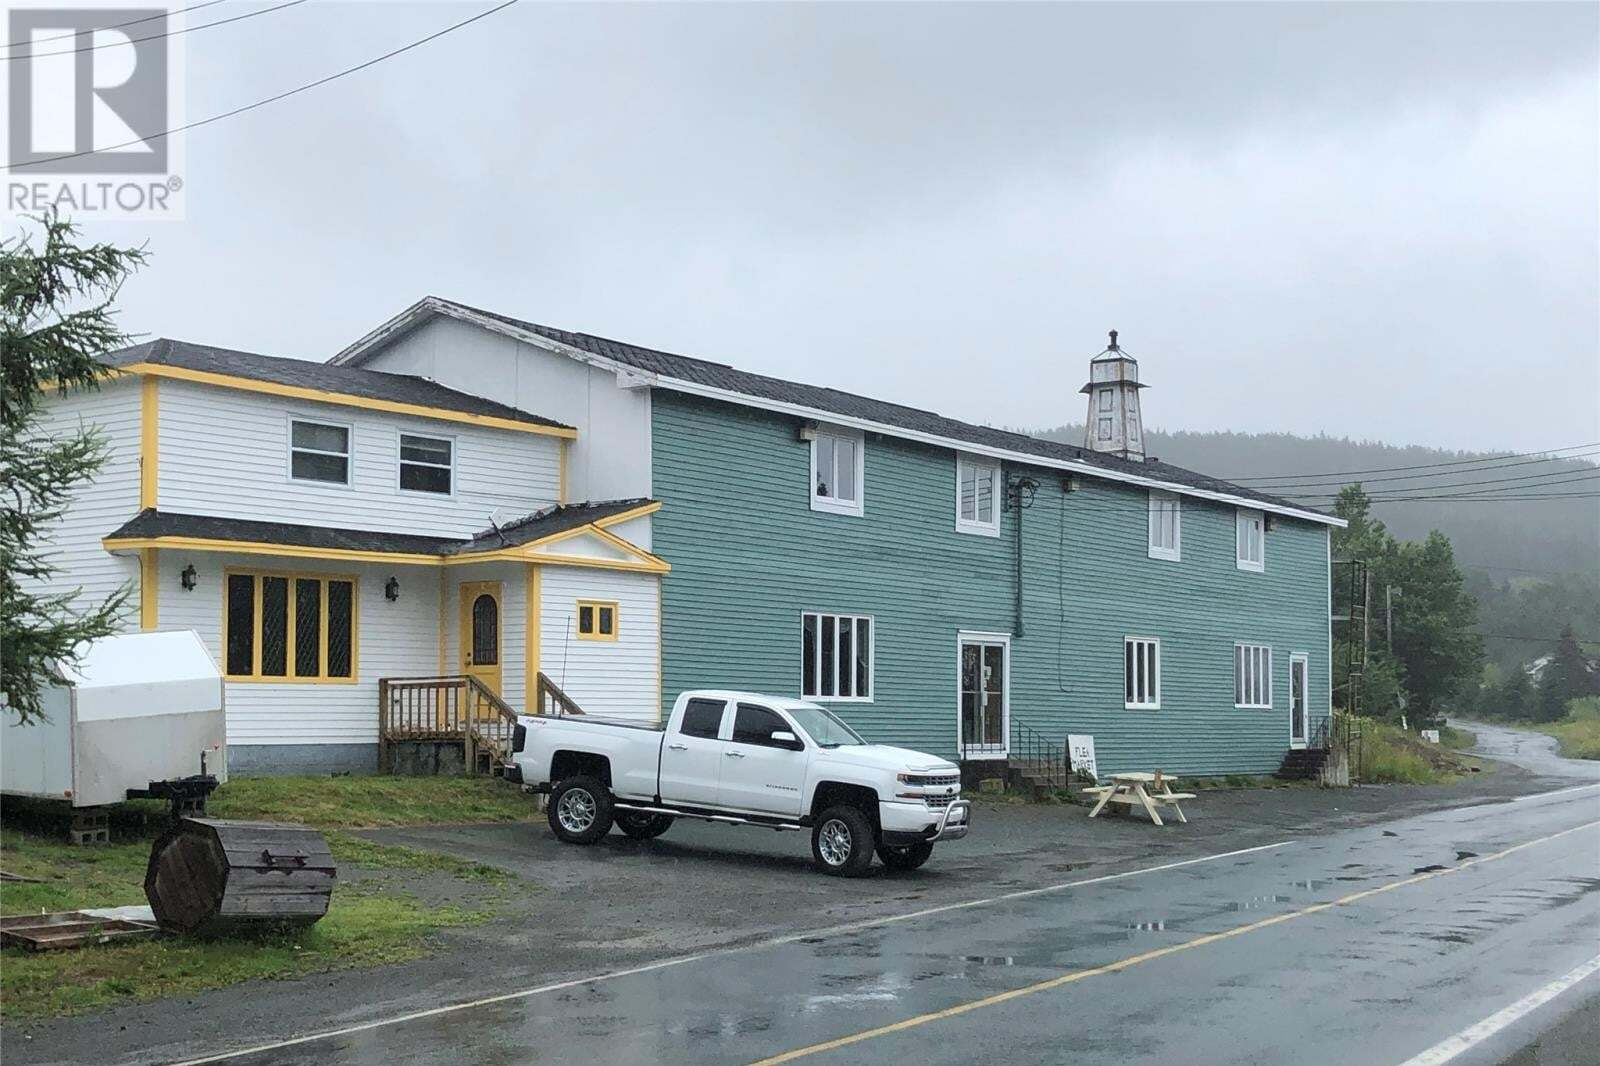 Home for sale at 0 Main Rd Cape Broyle Newfoundland - MLS: 1187895